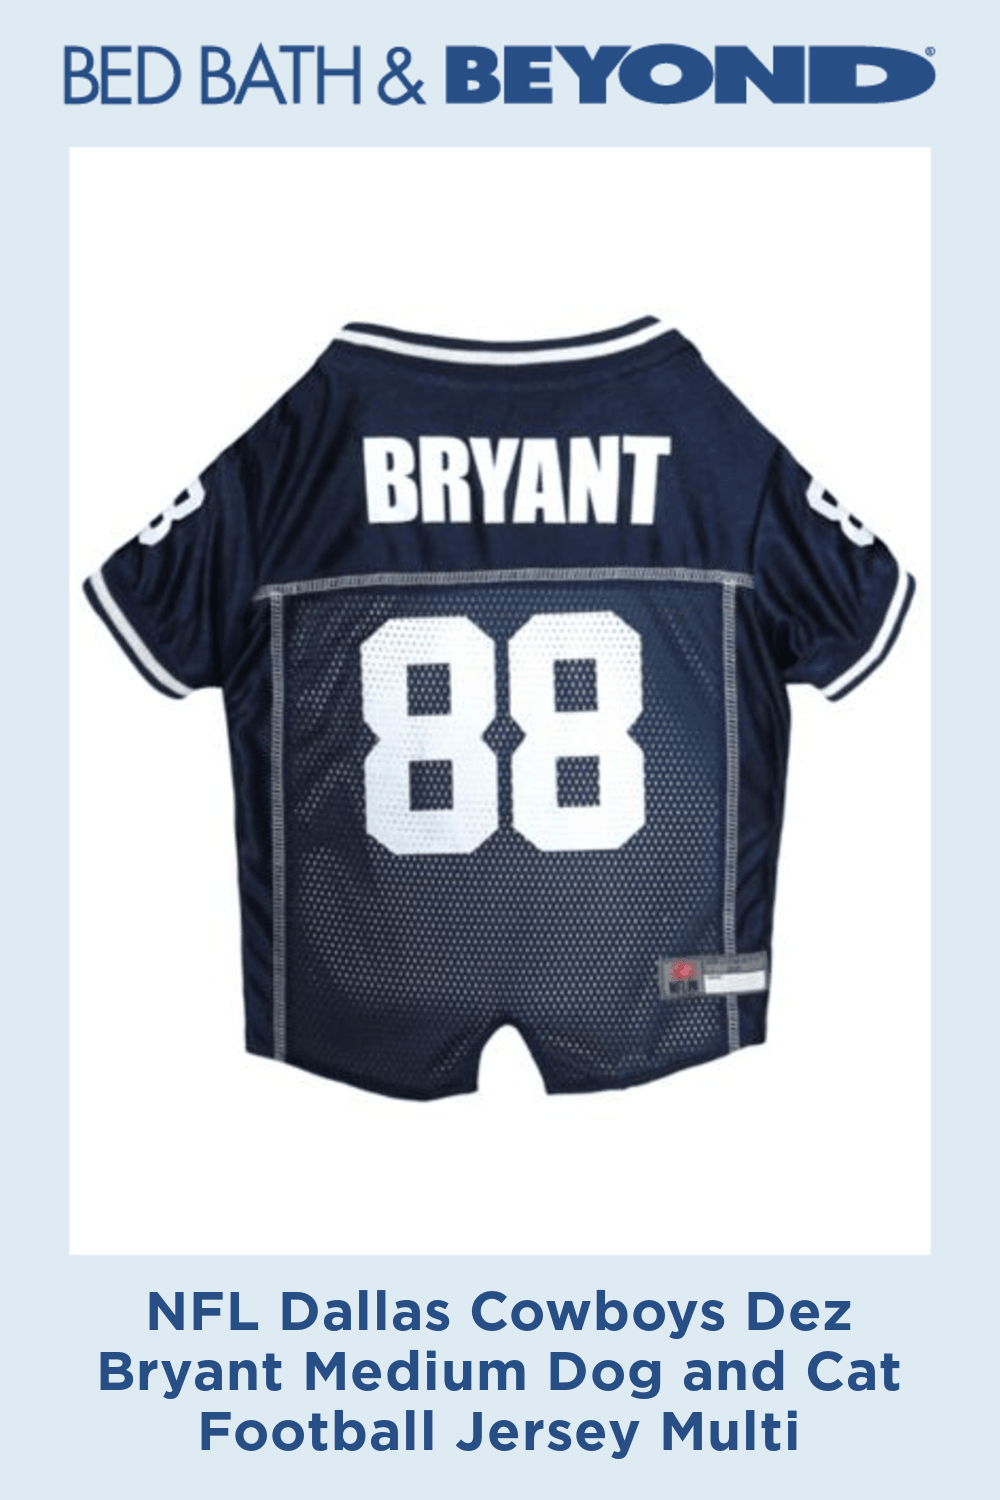 NFL Dallas Cowboys Dez Bryant Medium Dog and Cat Football Jersey Multi #dezbryant